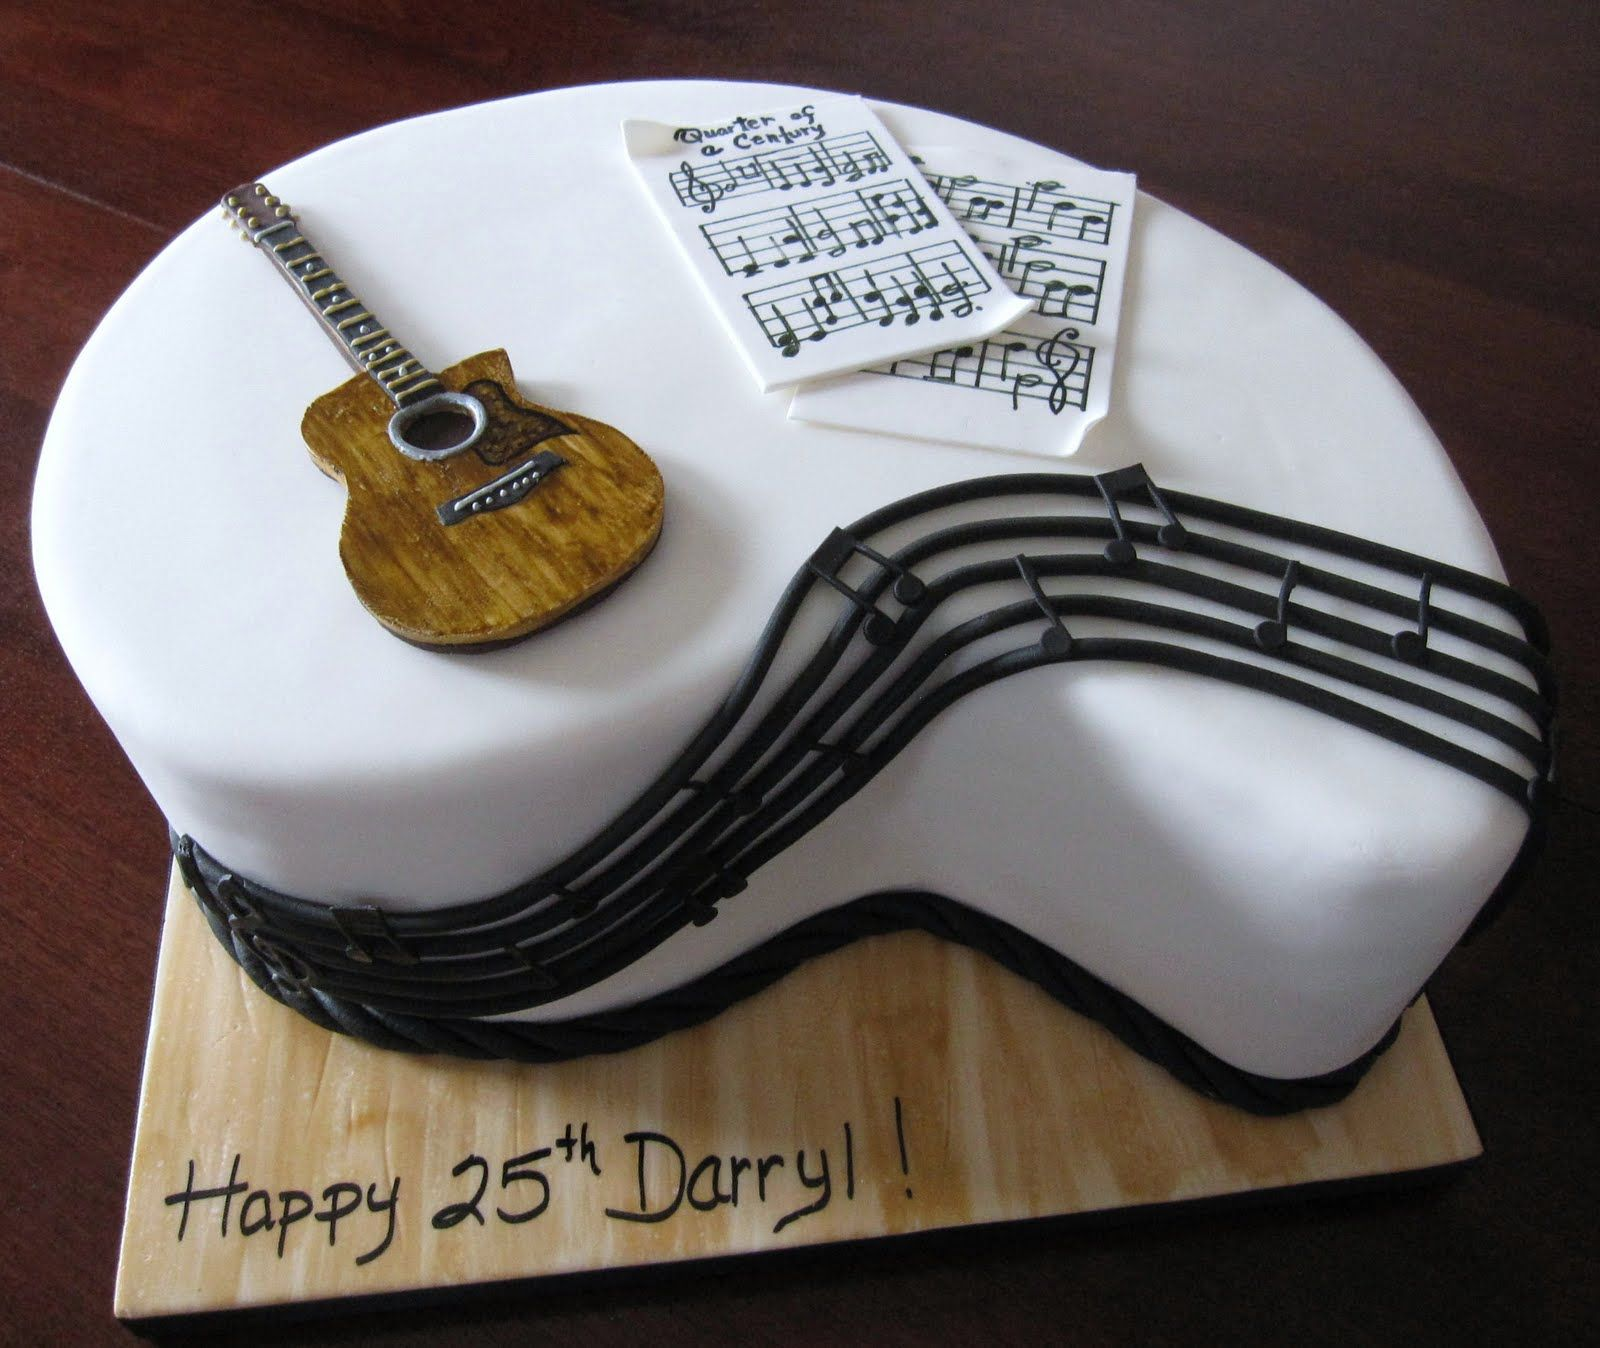 awesome music idea another musicthemed cake ViolettesbyBecky